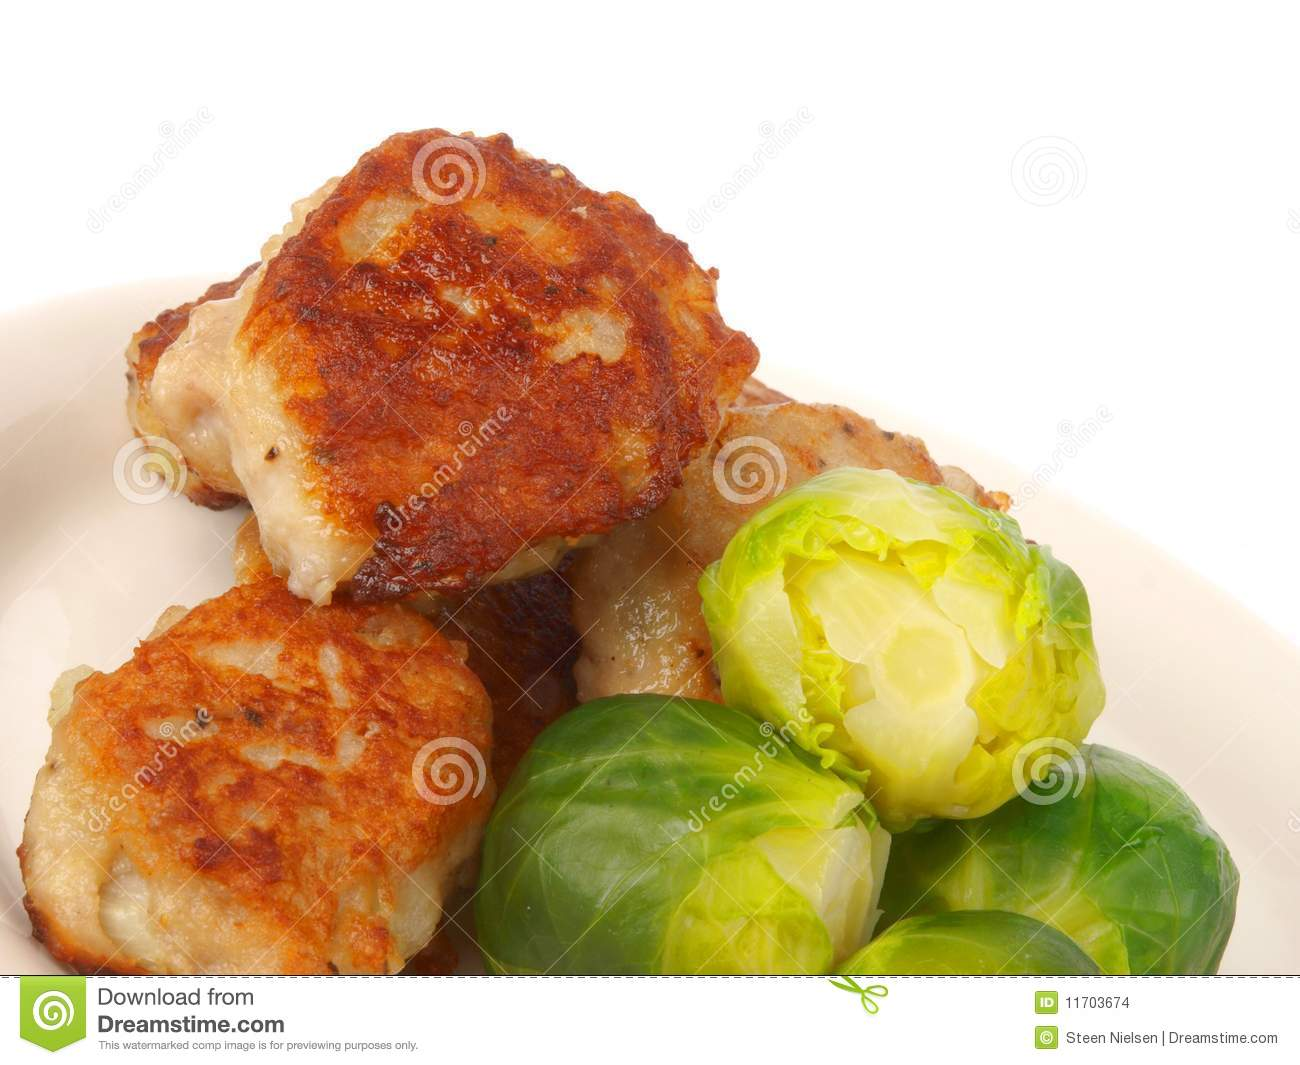 Danish meatballs with Brussels sprouts. Close up on white background.